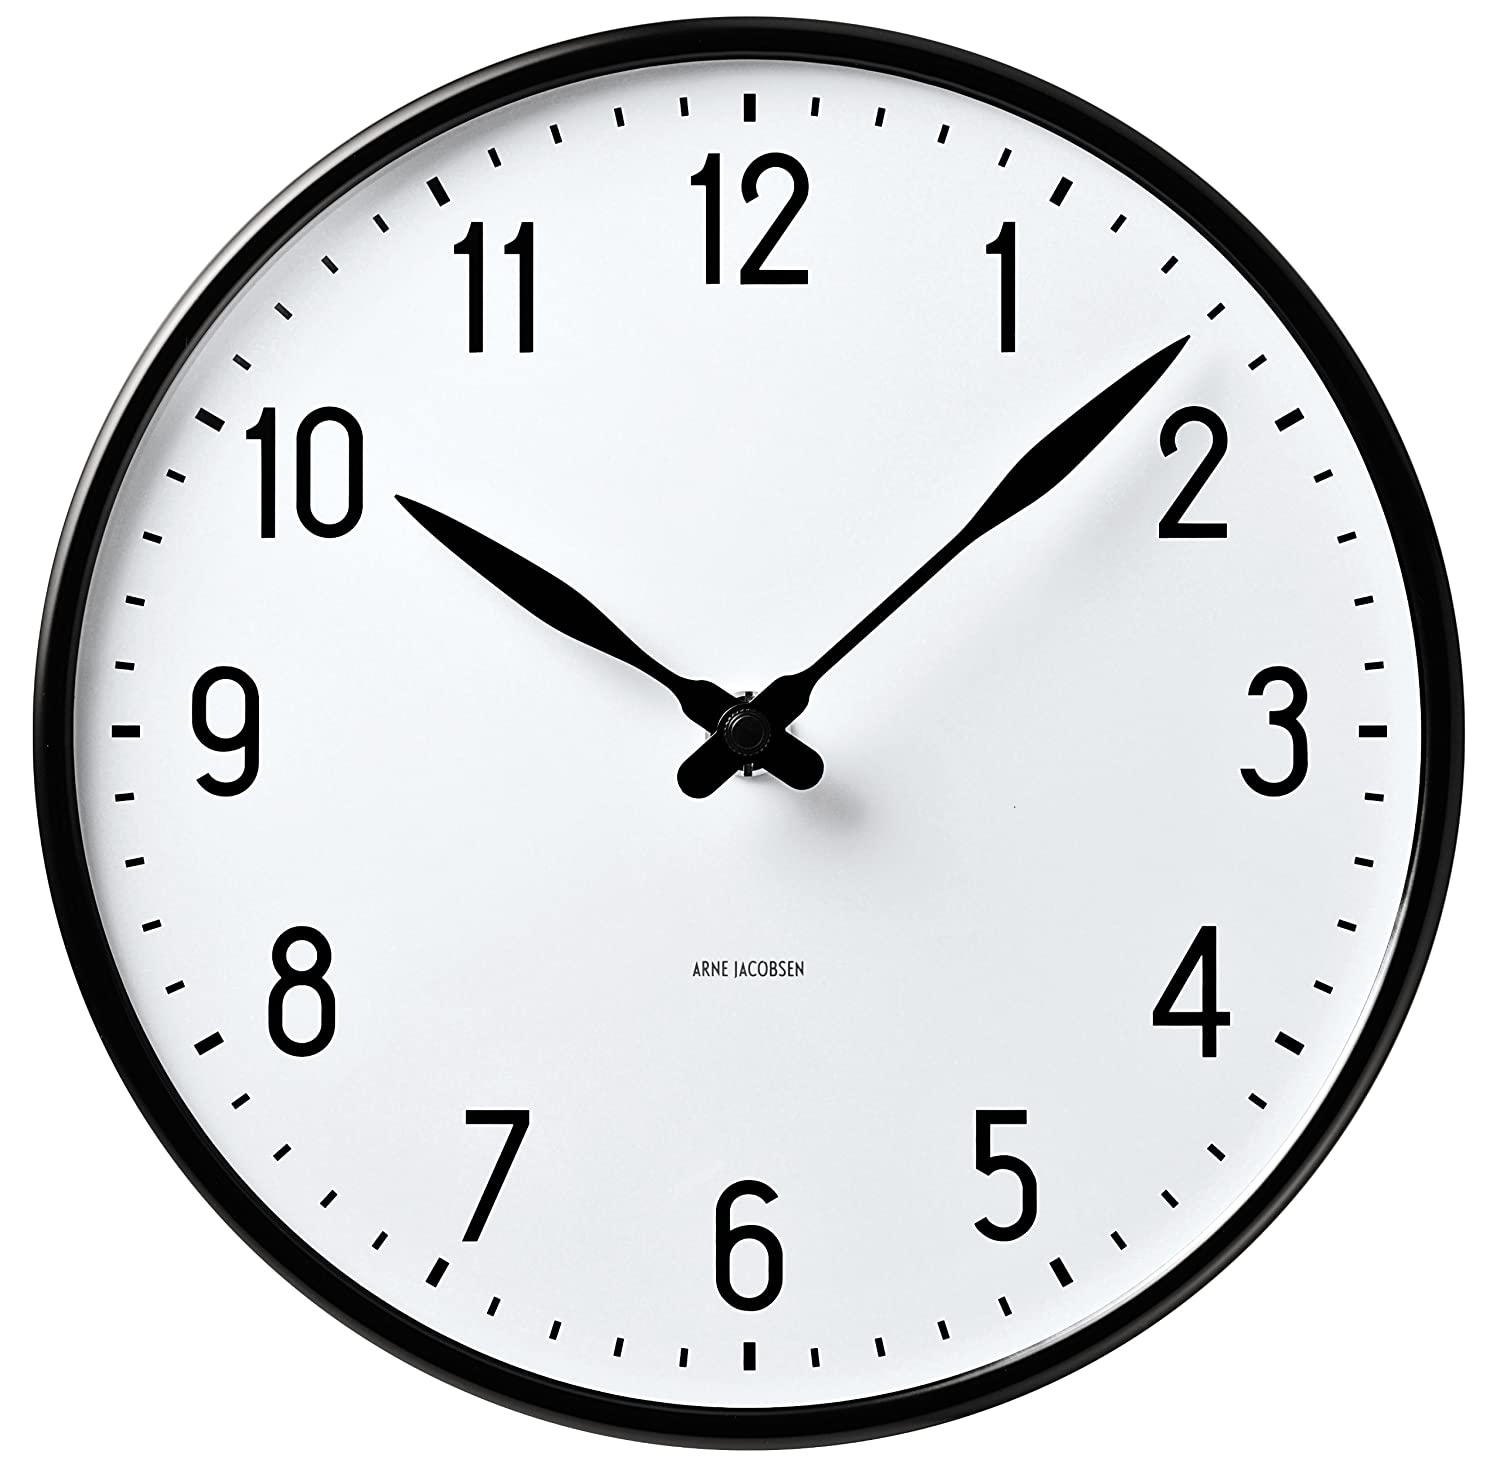 Amazon arne jacobsen station wall clock 290 43643 home kitchen amipublicfo Choice Image